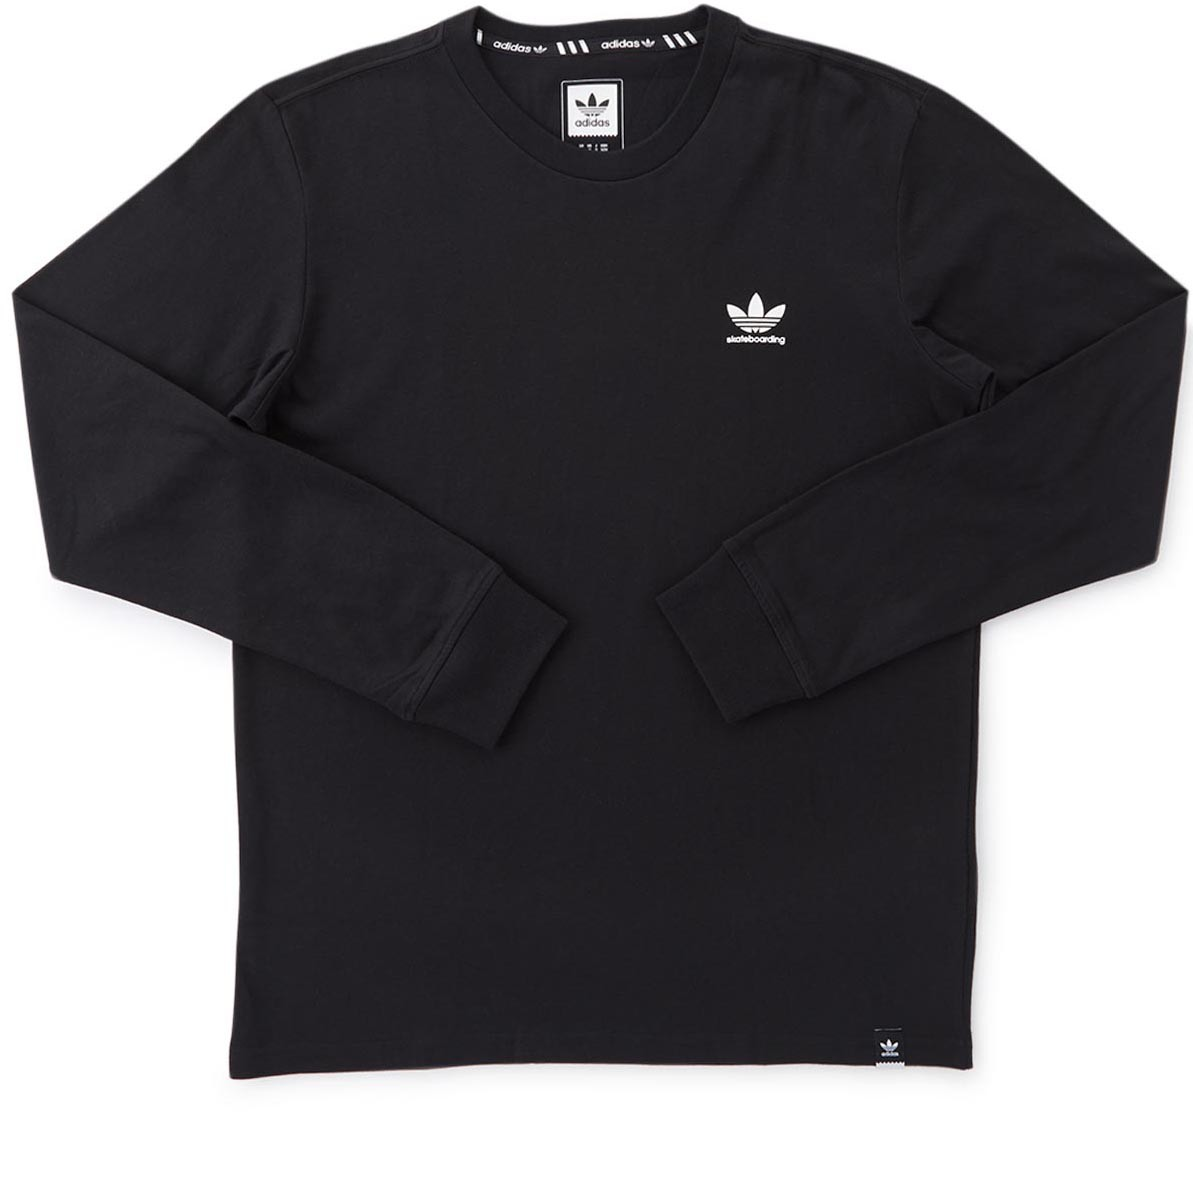 Adidas Clima 2.0 Long Sleeve T-Shirt - Black